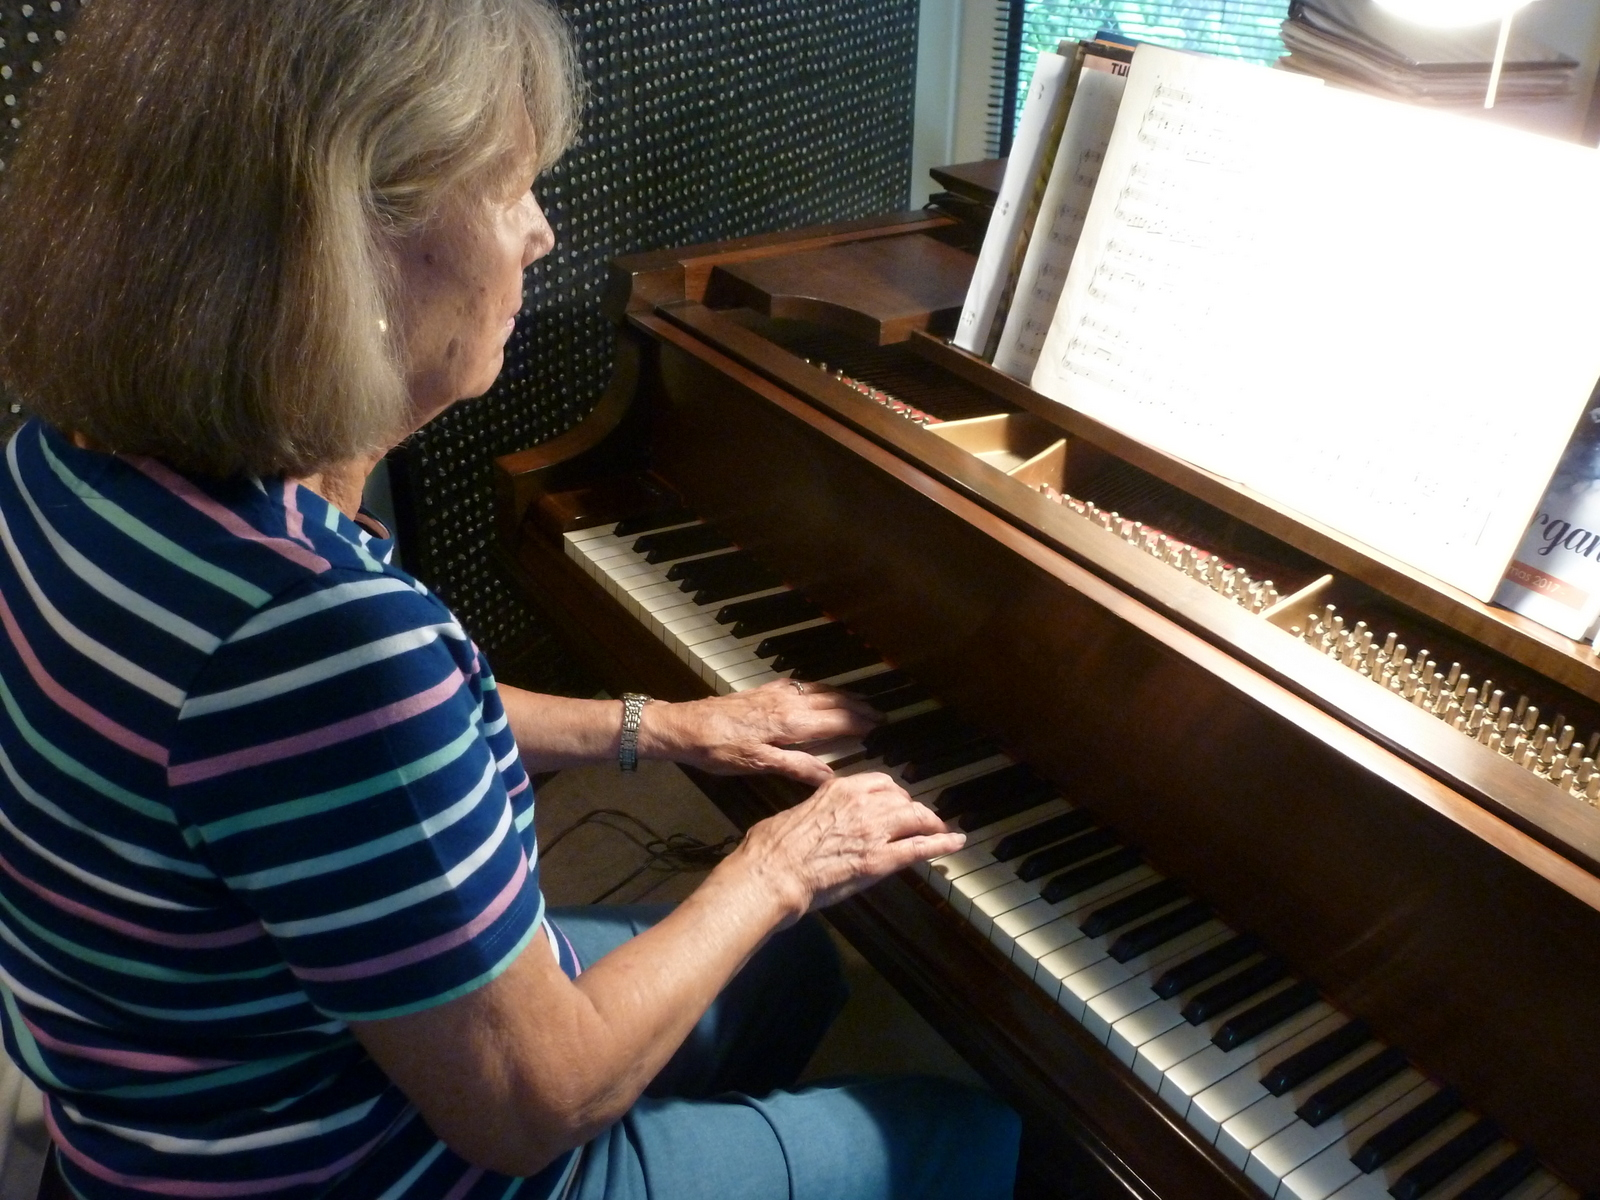 With no arthritis, playing the piano can still be enjoyed.